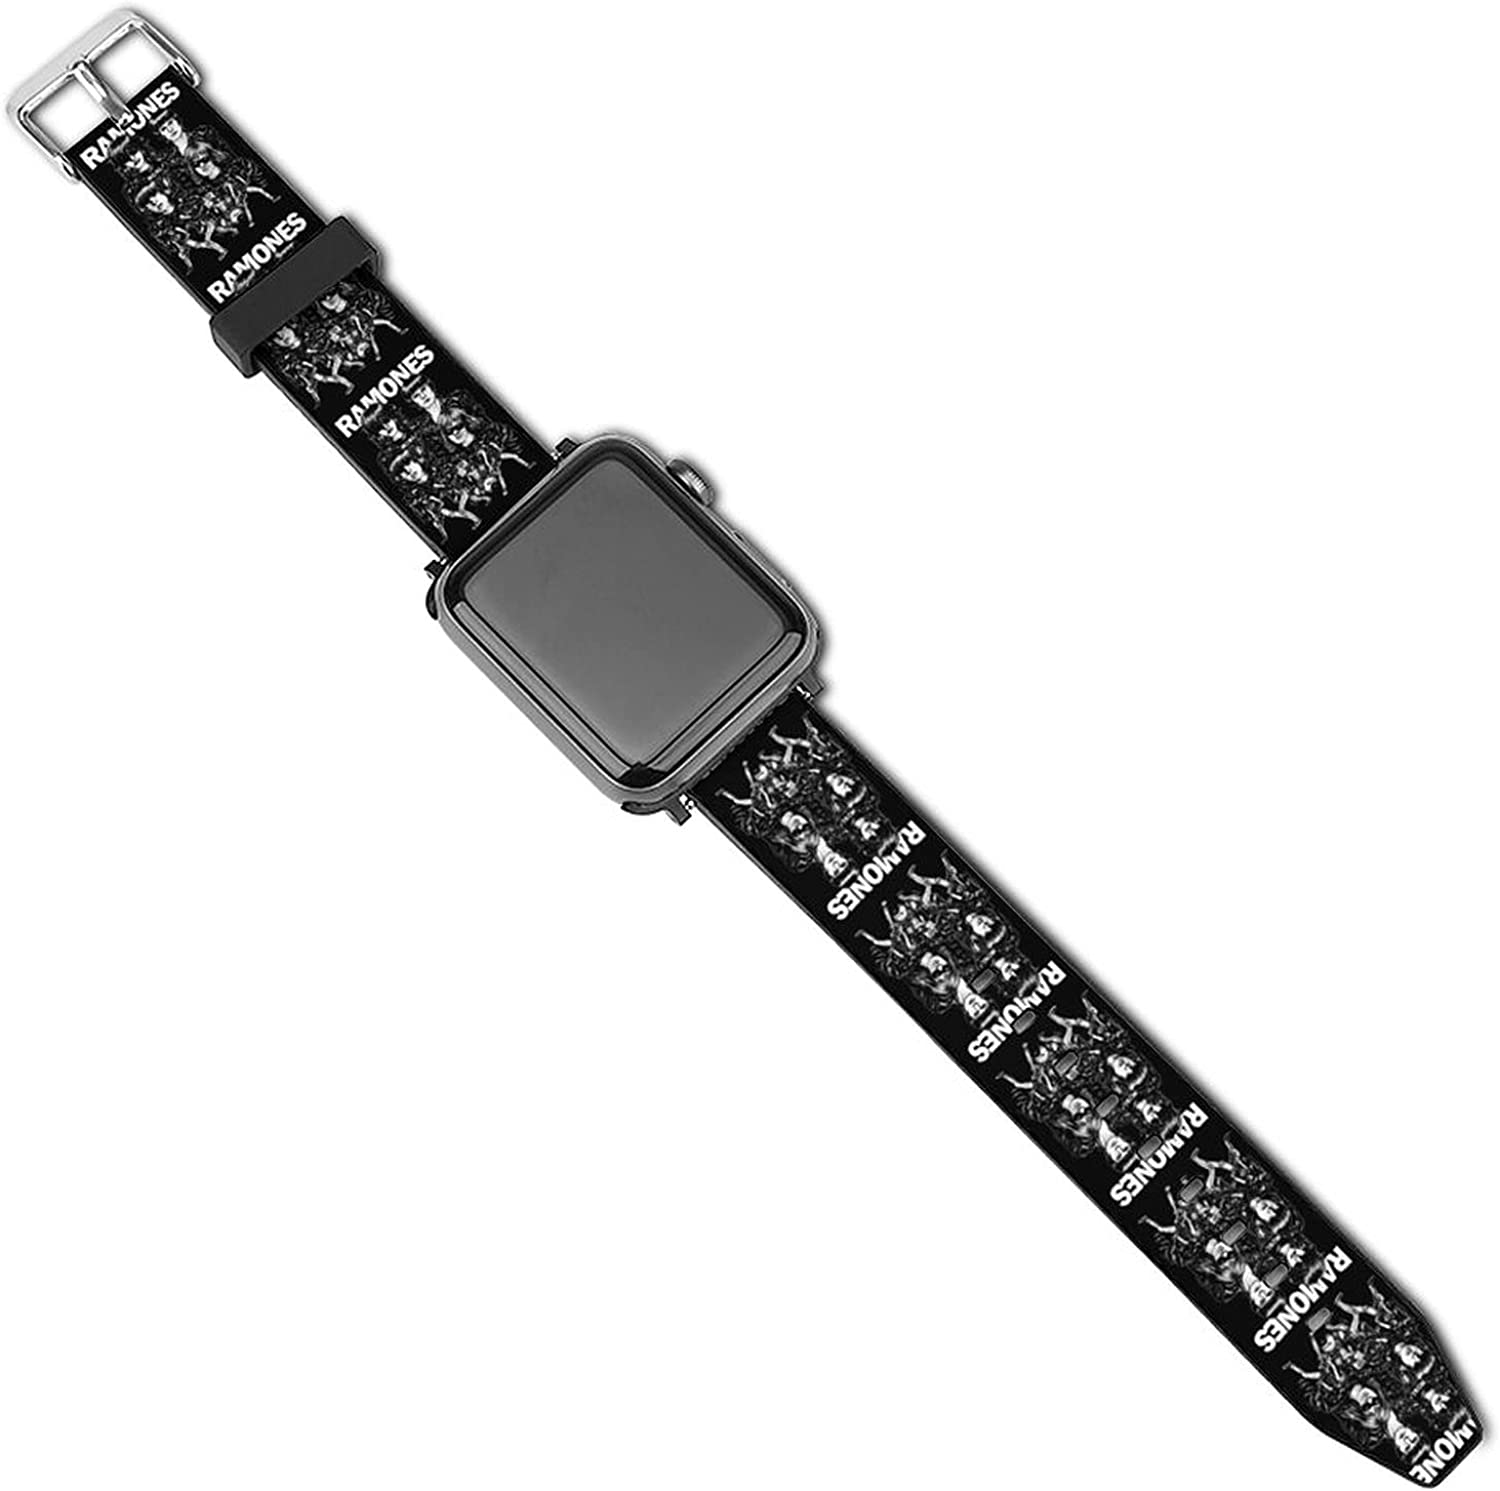 Ra-mo-NES Patterned Leather Wristband Strap for Apple Watch Series 5/4/3/2/1